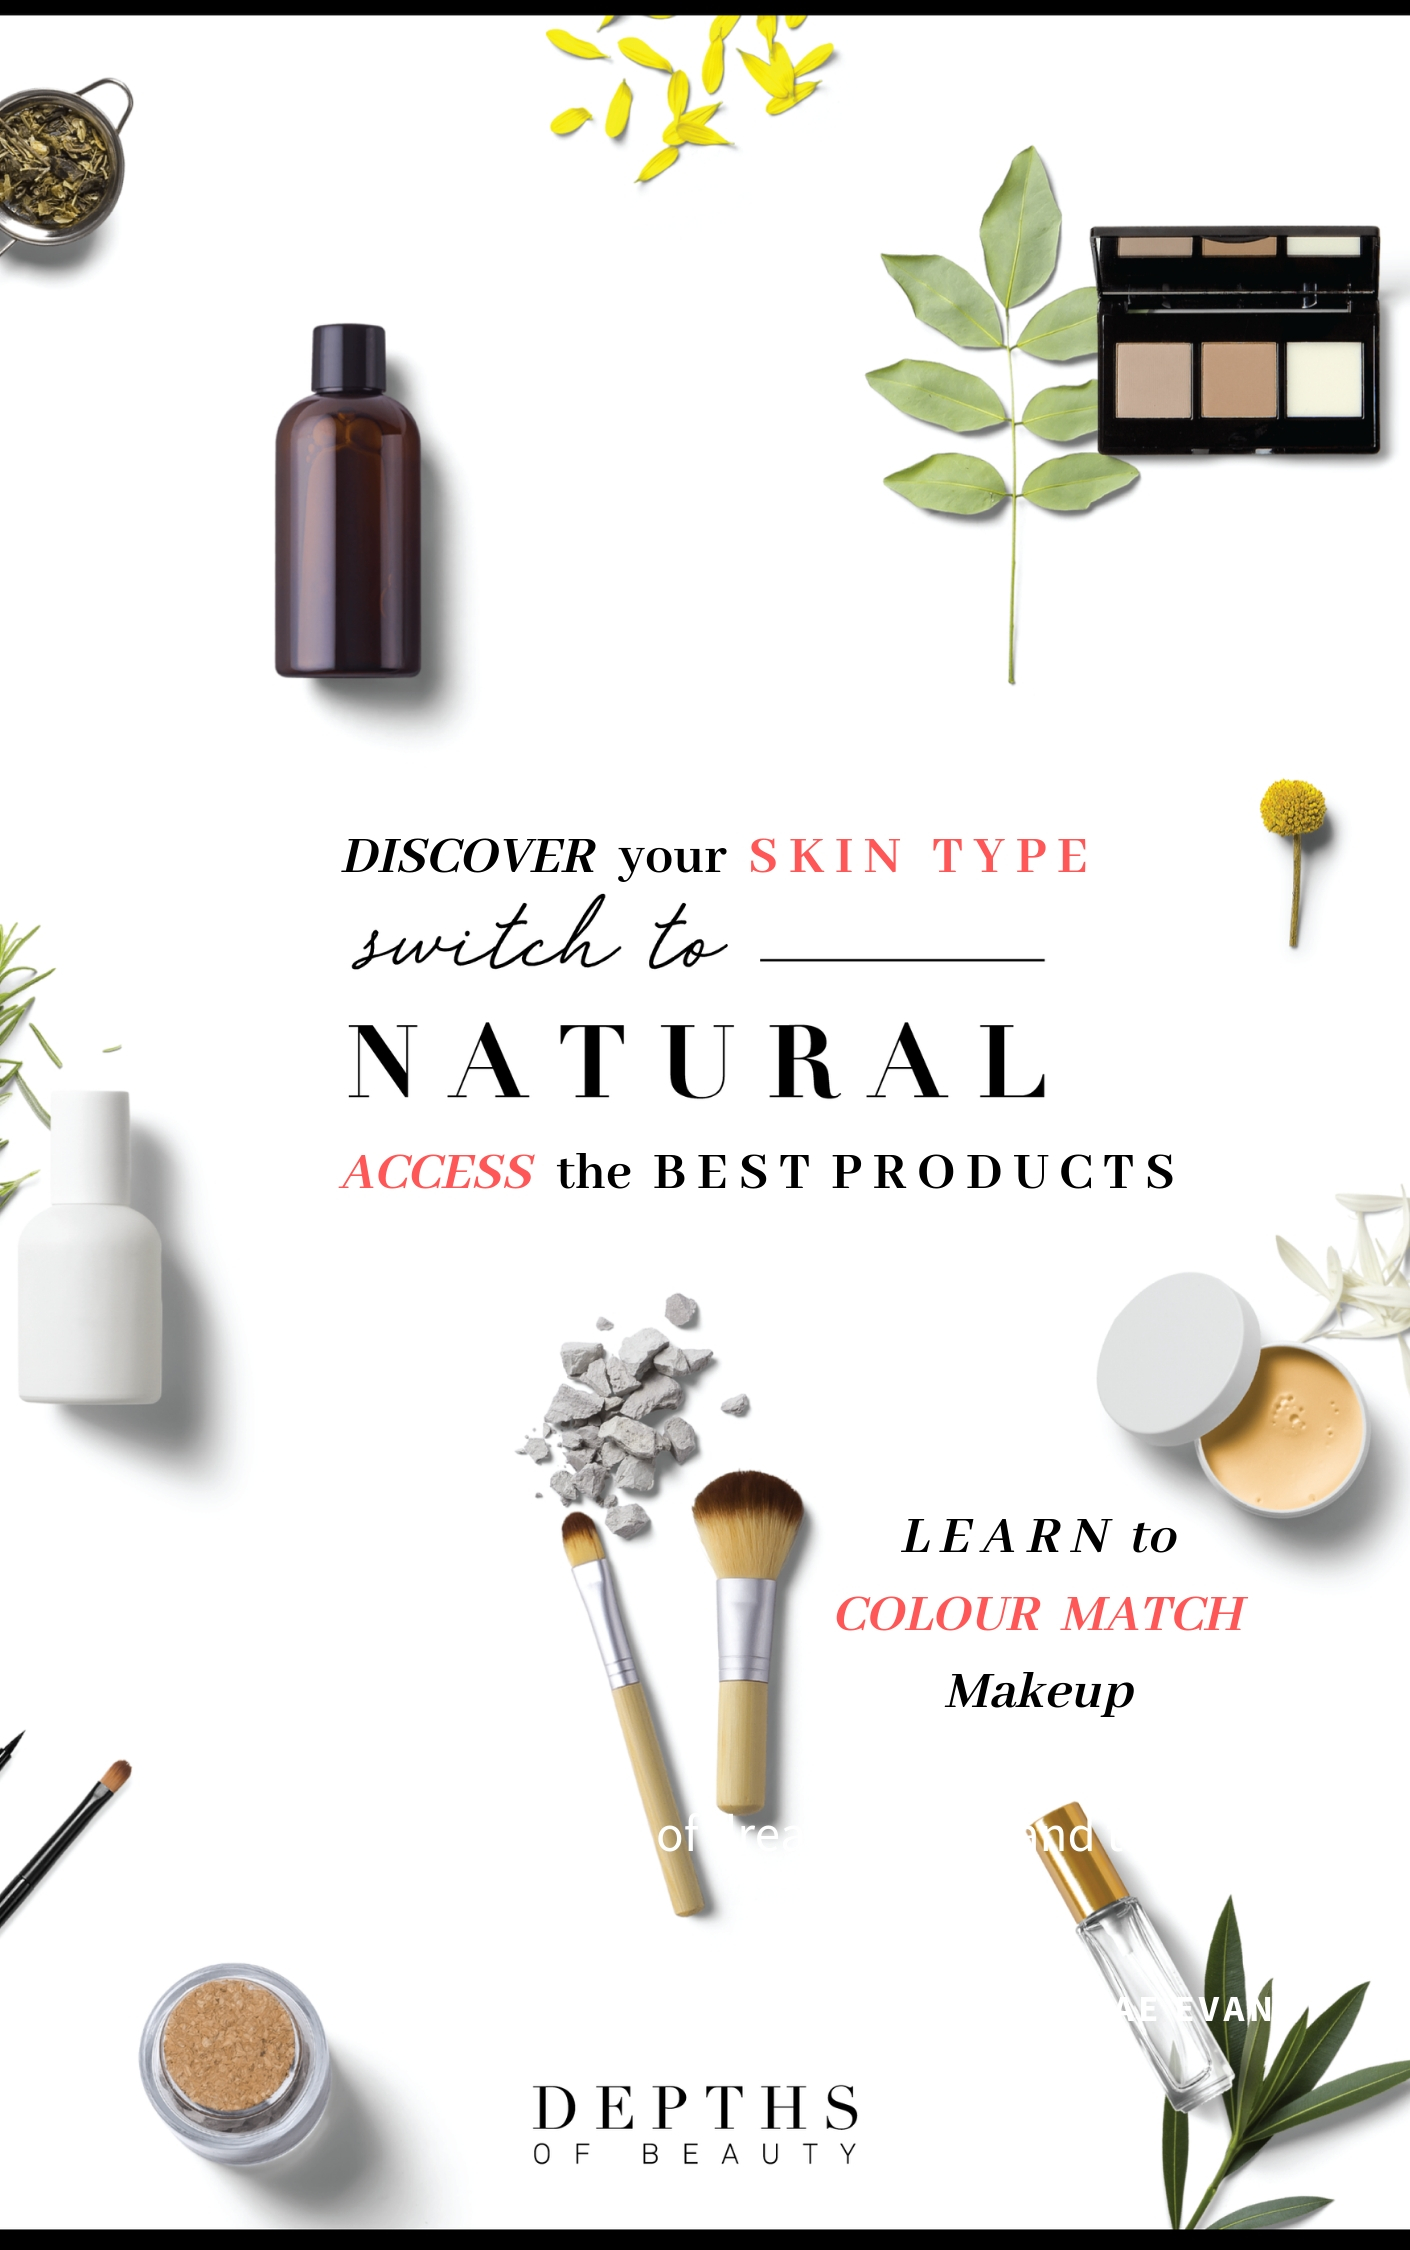 Switch To Natural (2).jpg